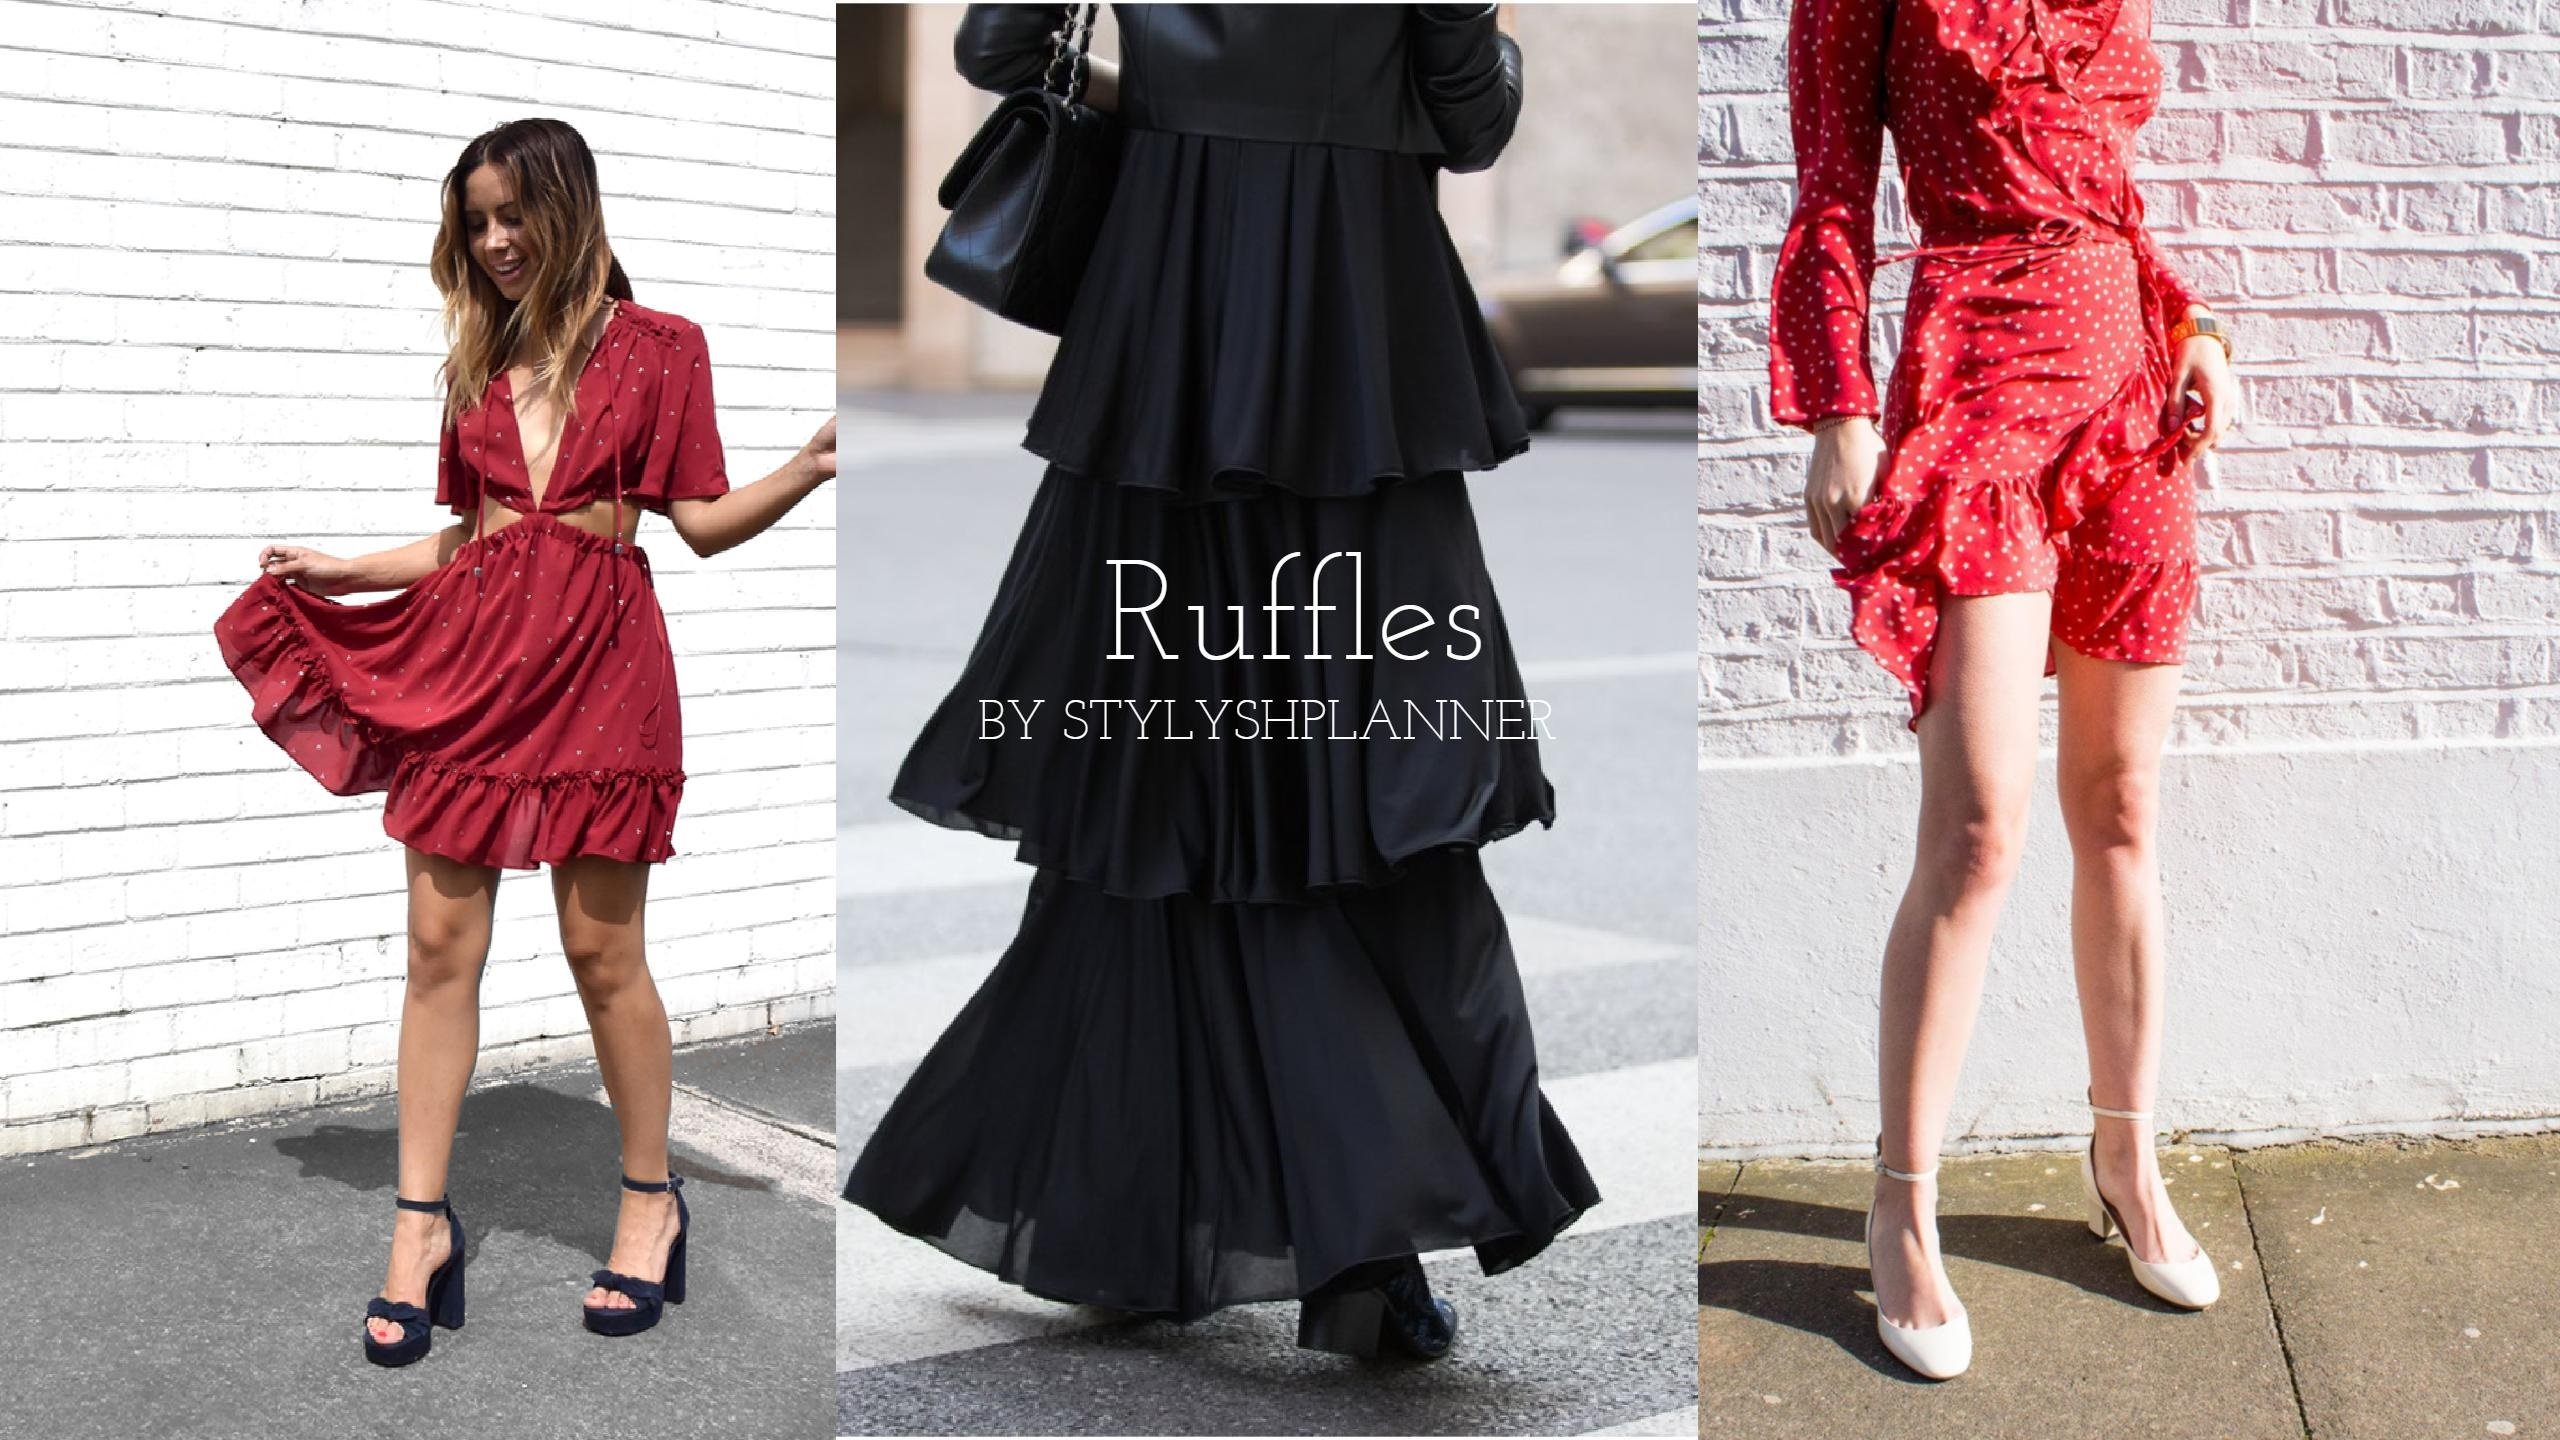 Dress for less: Ruffles